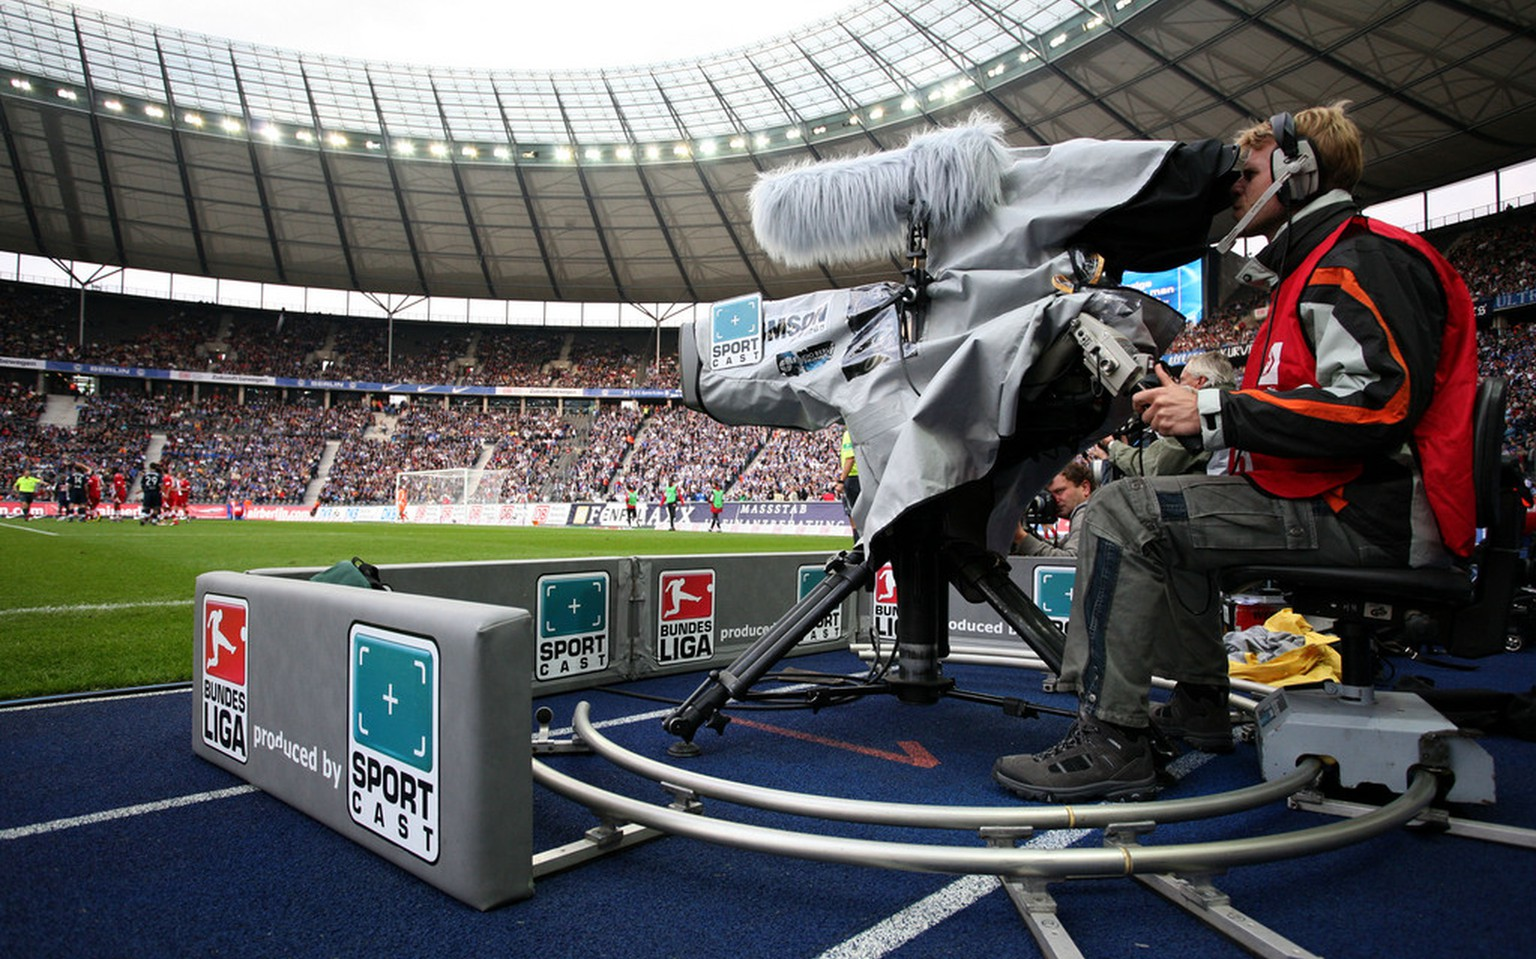 A cameraman is pictured during the German first division Bundesliga soccer match between Hertha BSC Berlin and FC Energie Cottbus in Berlin, Germany, on Saturday, Oct. 6, 2007. (AP Photo/Miguel Villagran) ** NO MOBILE USE UNTIL 2 HOURS AFTER THE MATCH, WEBSITE USERS ARE OBLIGED TO COMPLY WITH DFL-RESTRICTIONS, SEE INSTRUCTIONS FOR DETAILS **